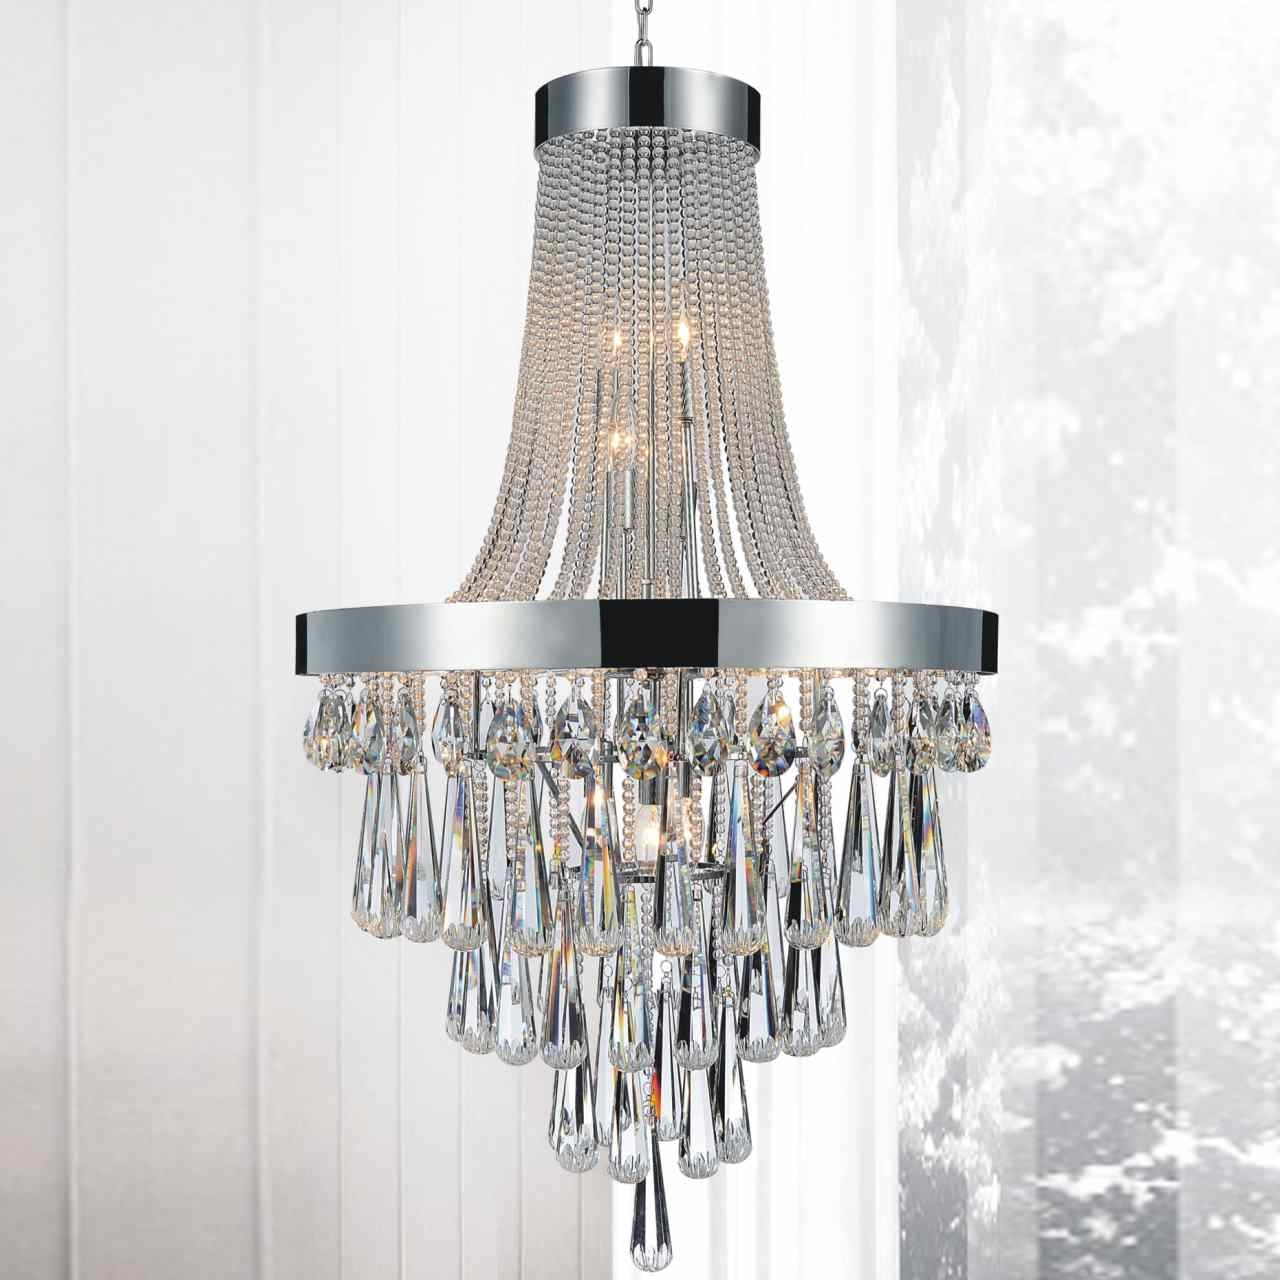 Newest Large Chandeliers Modern For Brizzo Lighting Stores (View 15 of 20)